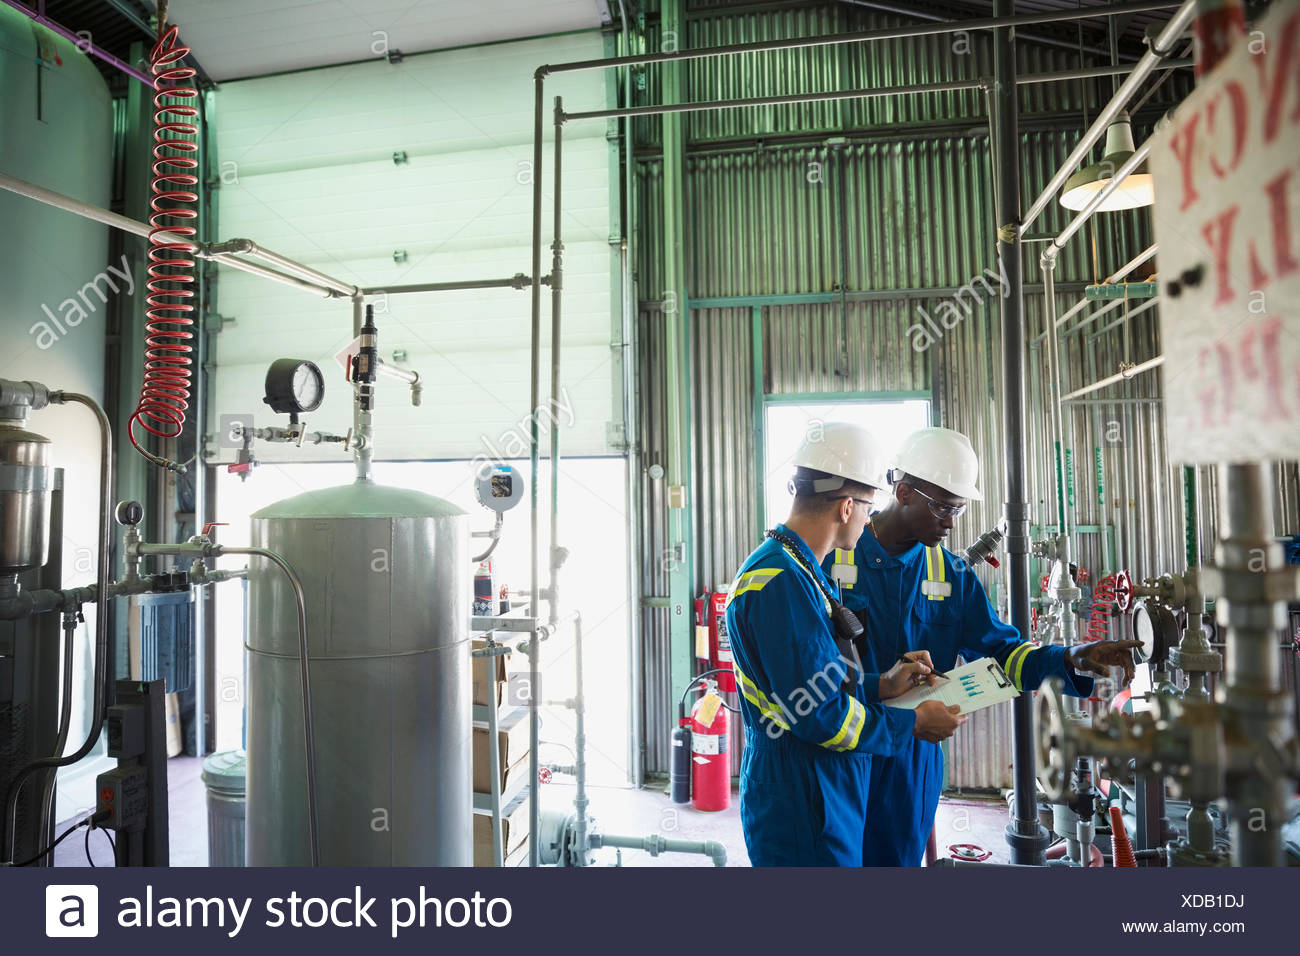 Male workers checking equipment gauge in gas plant - Stock Image